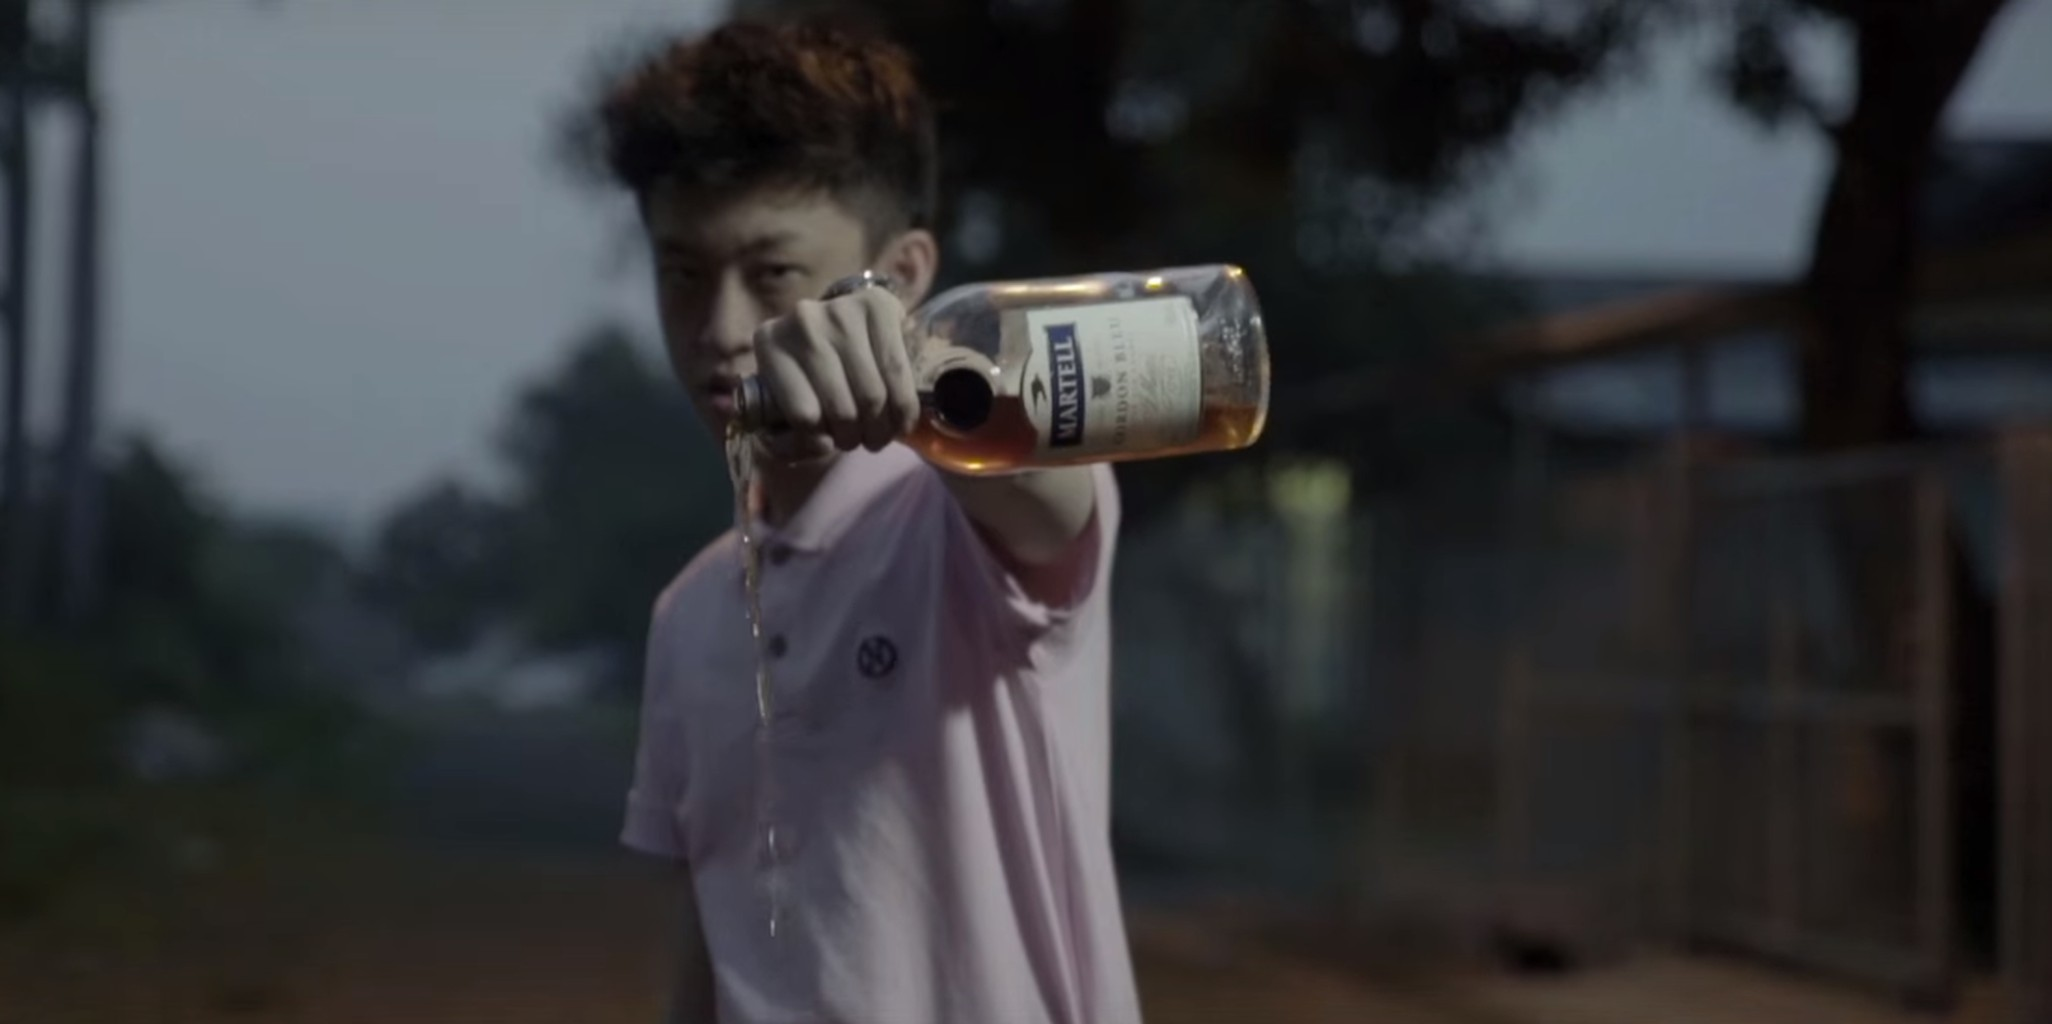 Peace Black Wallpaper Is Rich Chigga Serious The Daily Dot